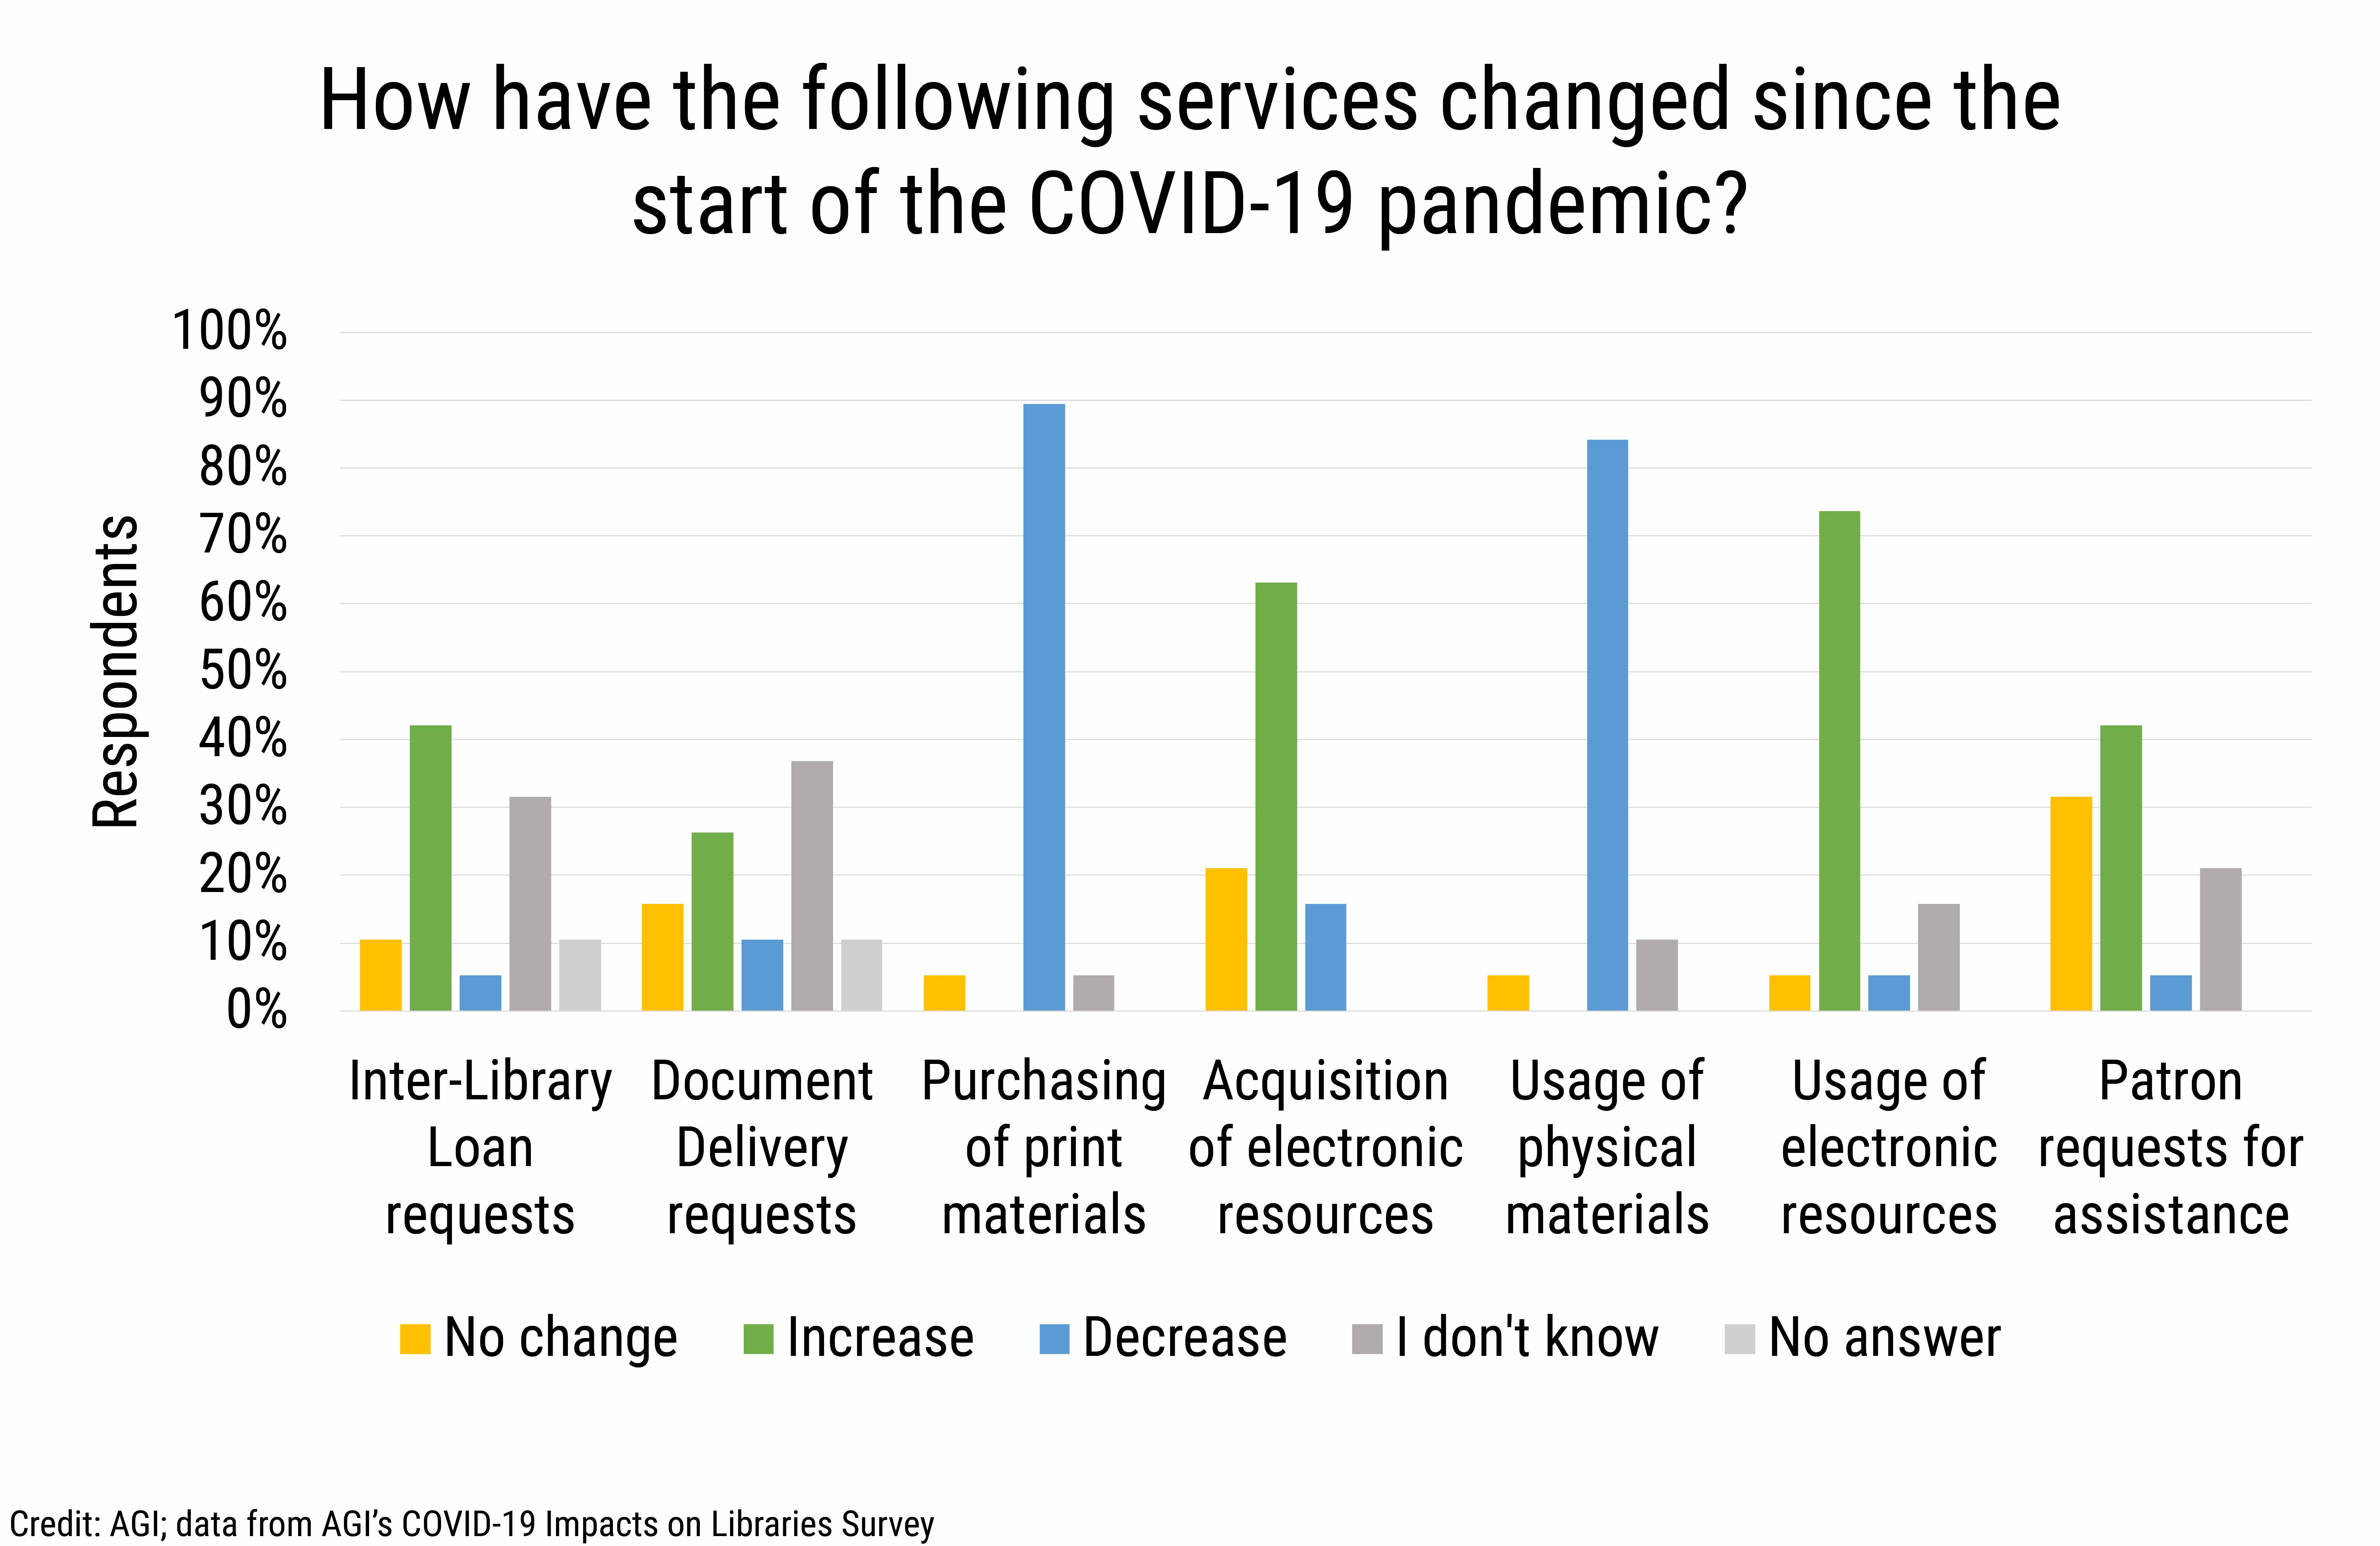 DB_2020-030_chart01 Change in library services during COVID-19. (Credit: AGI, data from AGI's COVID-19 Impacts on Libraries Survey)